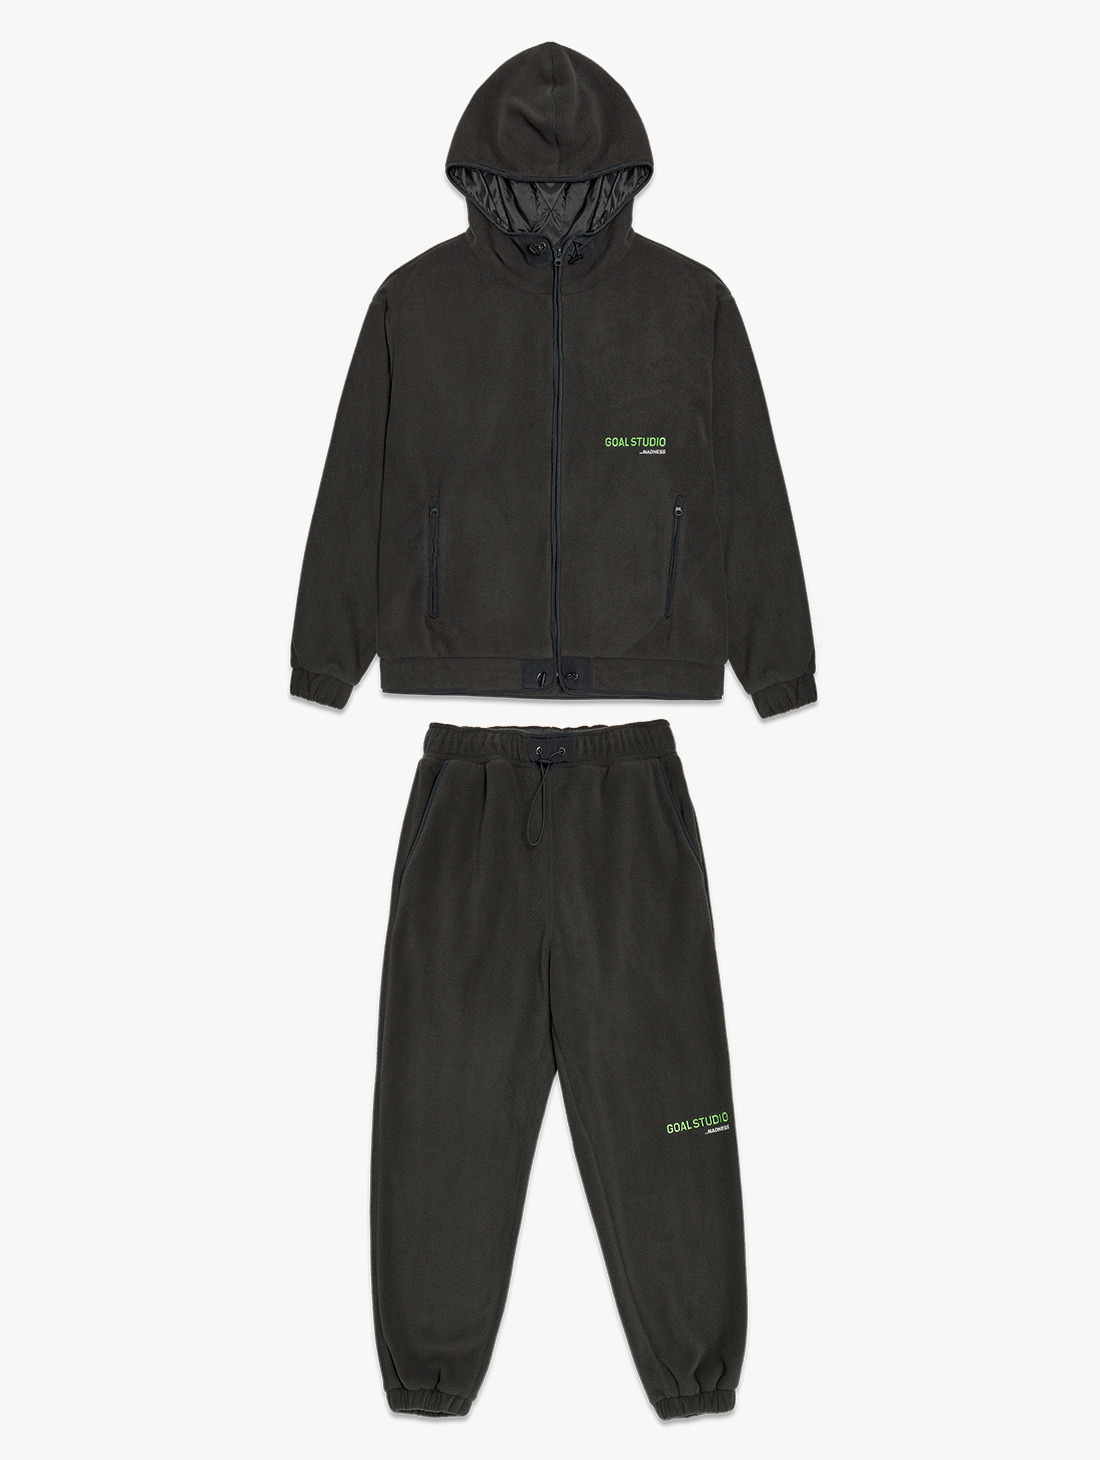 GOALSTUDIO [10% OFF] FLEECE FULL ZIP HOODED JACKET & JOGGER PANTS SET